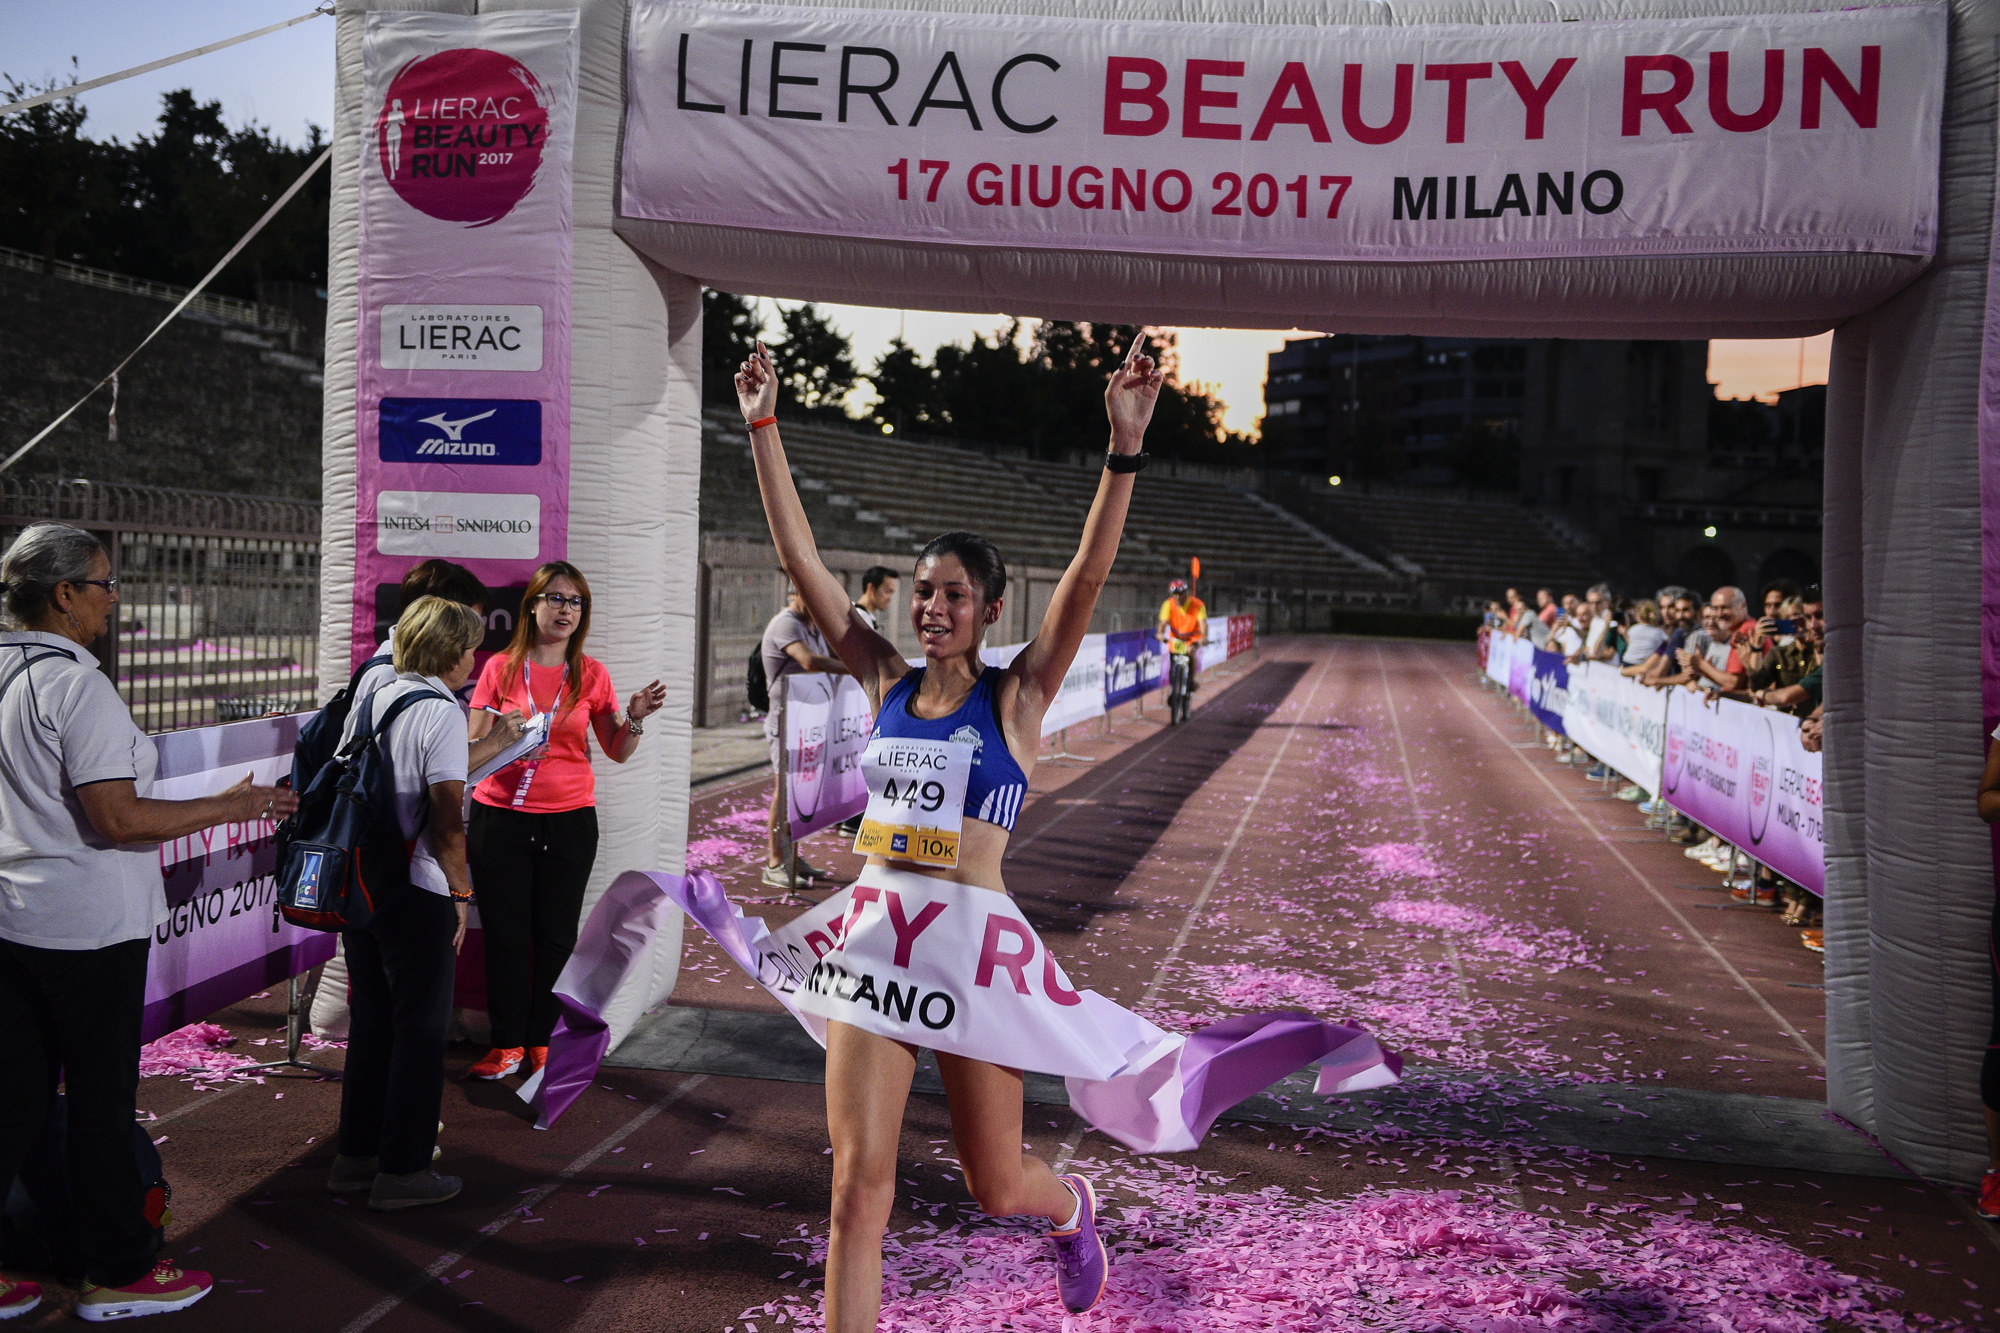 Foto LaPresse - Marco Alpozzi 17 06 2017 Milano ( Italia ) Sport Lierac Beauty Run 2017, la corsa dedicata alle donne. Nella foto: Prima donna 10k Sara Galimberti Photo LaPresse - Marco Alpozzi June 17, 2017 Milan ( Italy ) sport Lierac Beauty Run 2017, the race dedicated to women. in the pic: Sara Galimberti